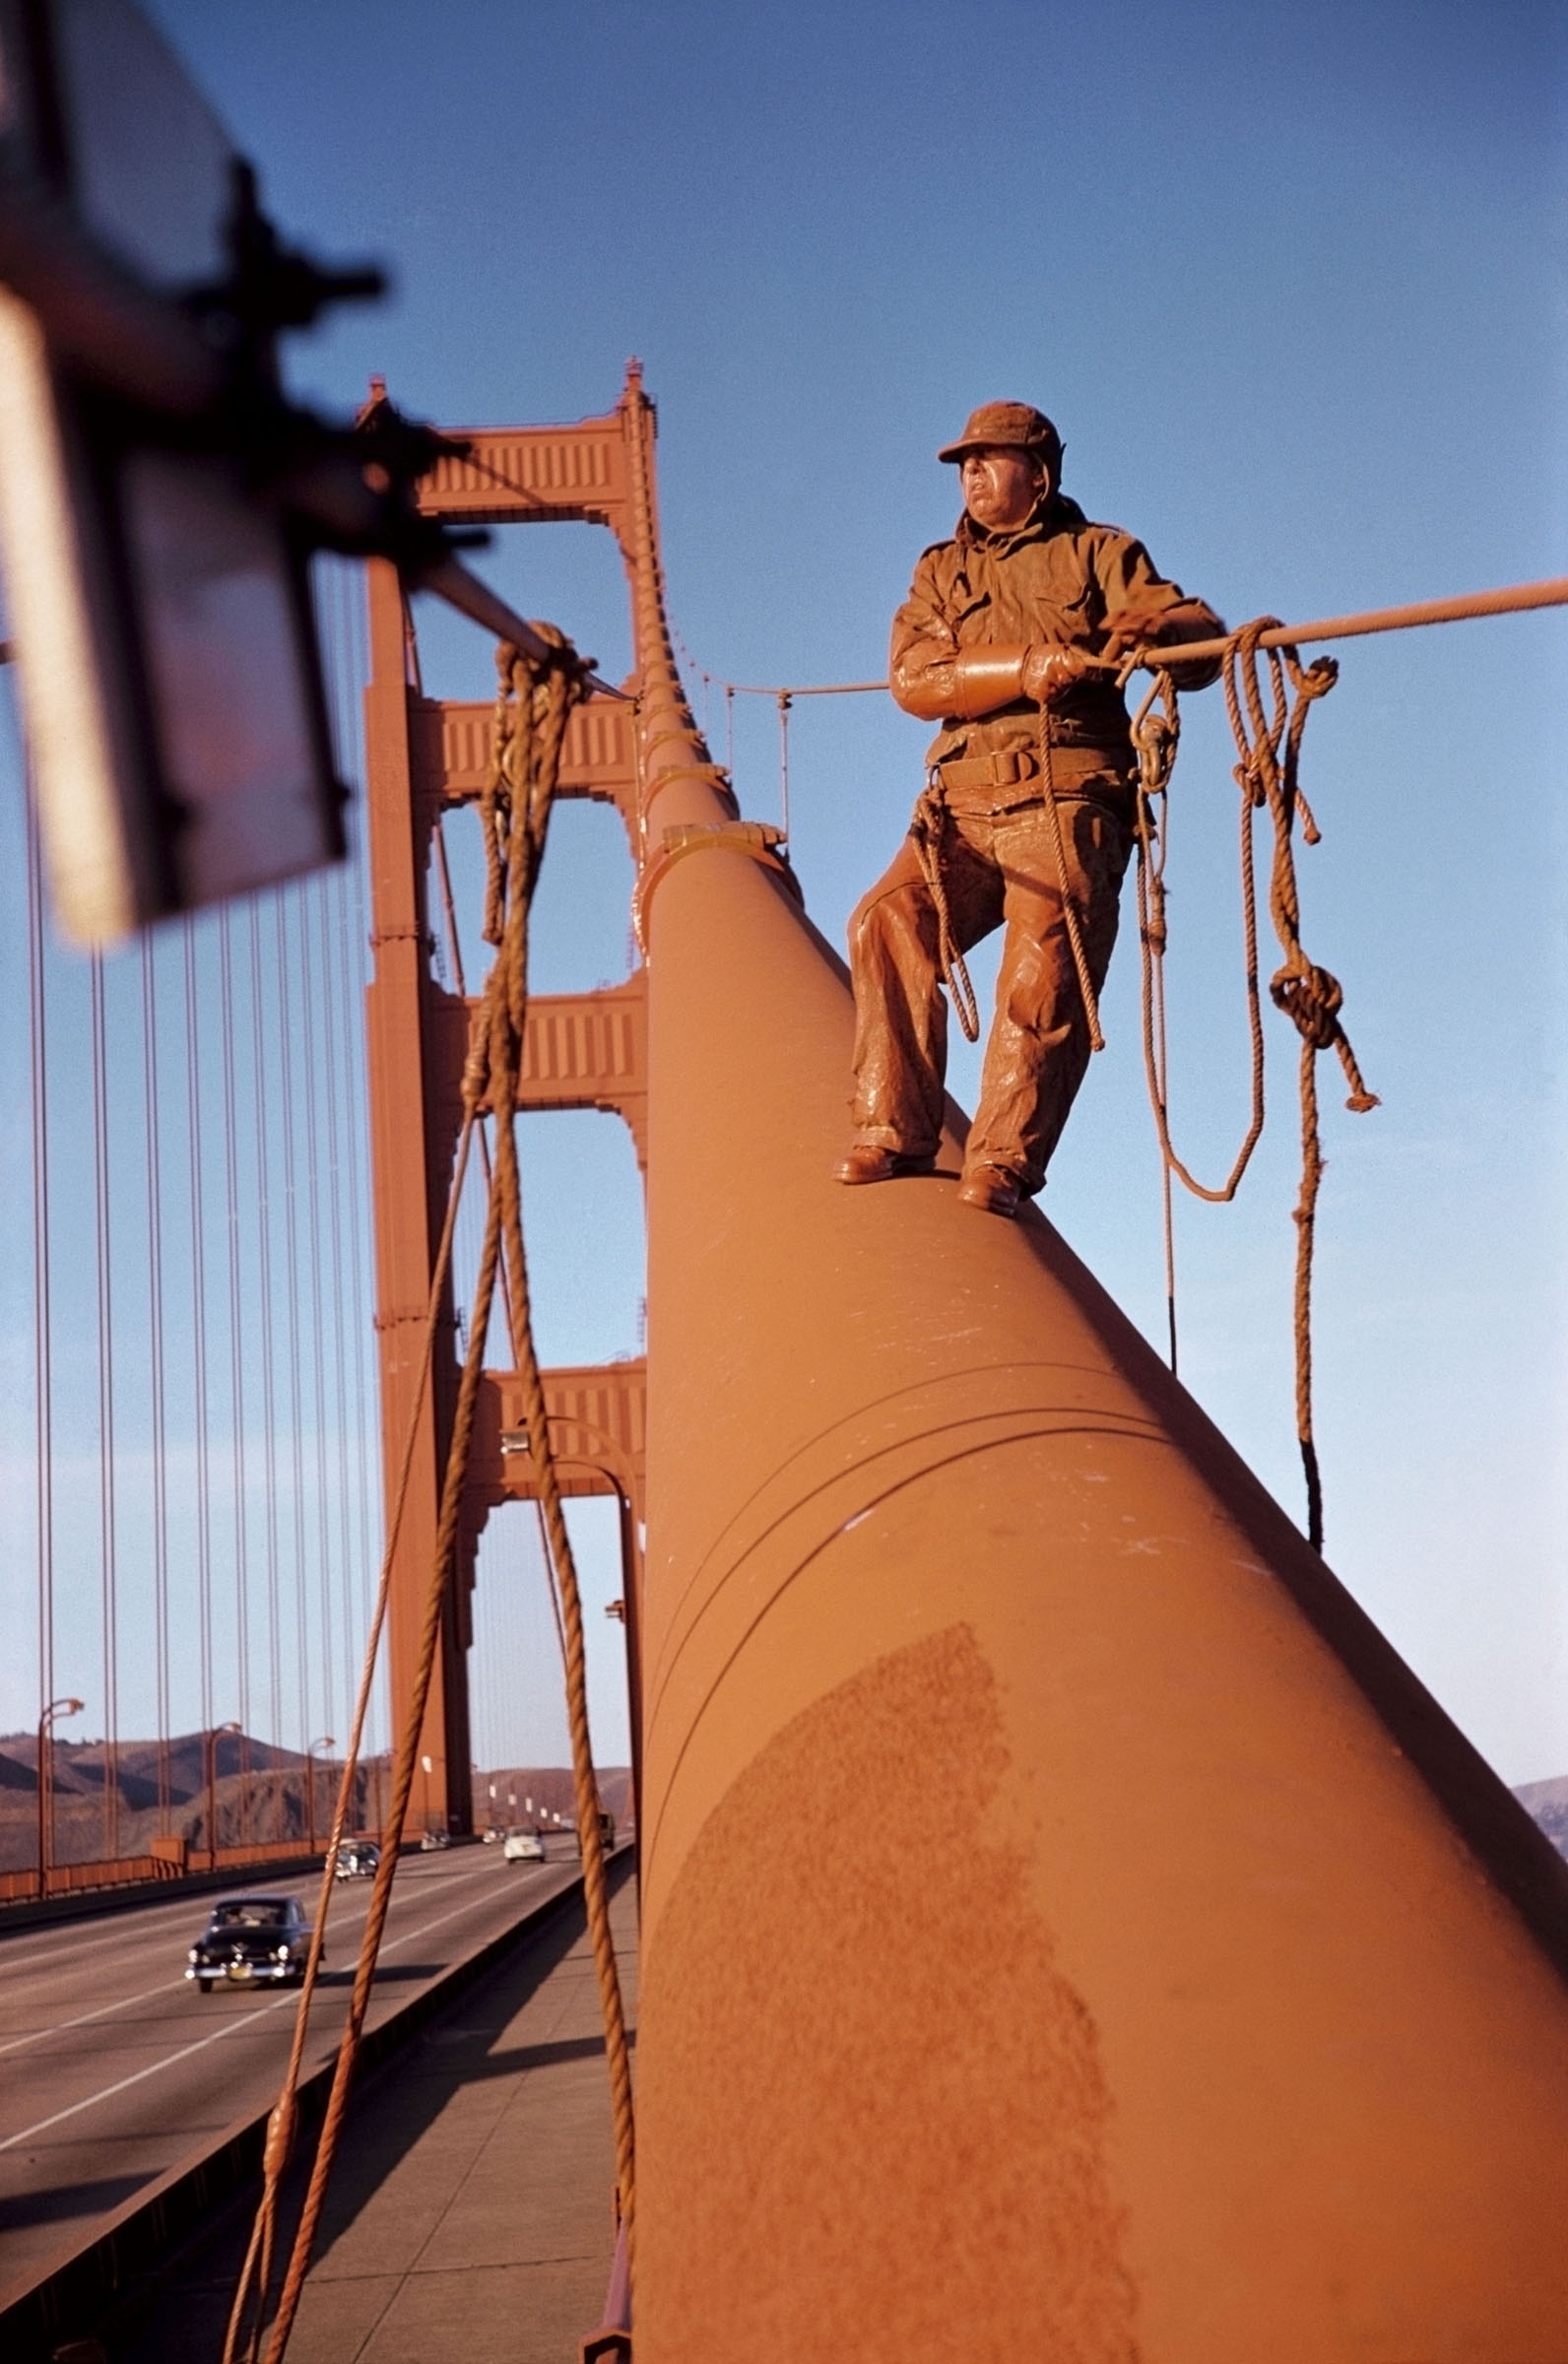 Werner Bischof, Golden Gate Bridge, San Francisco, USA, 1953 © Werner Bischof/Magnum Photos